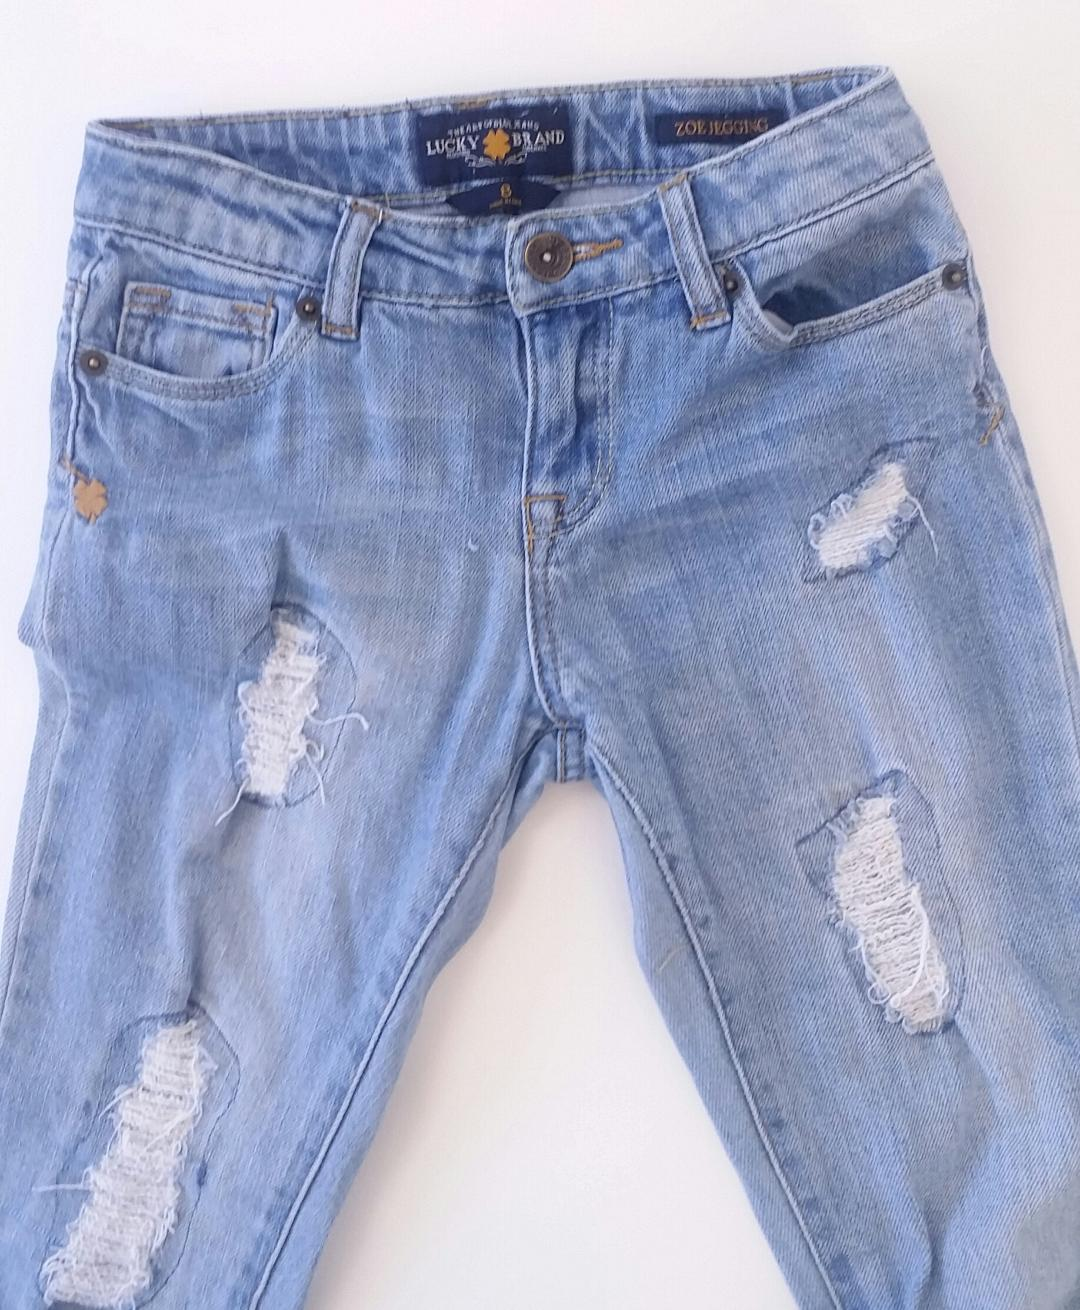 Lucky-Brand--8-YEARS-Distressed-Jeans_2160129B.jpg